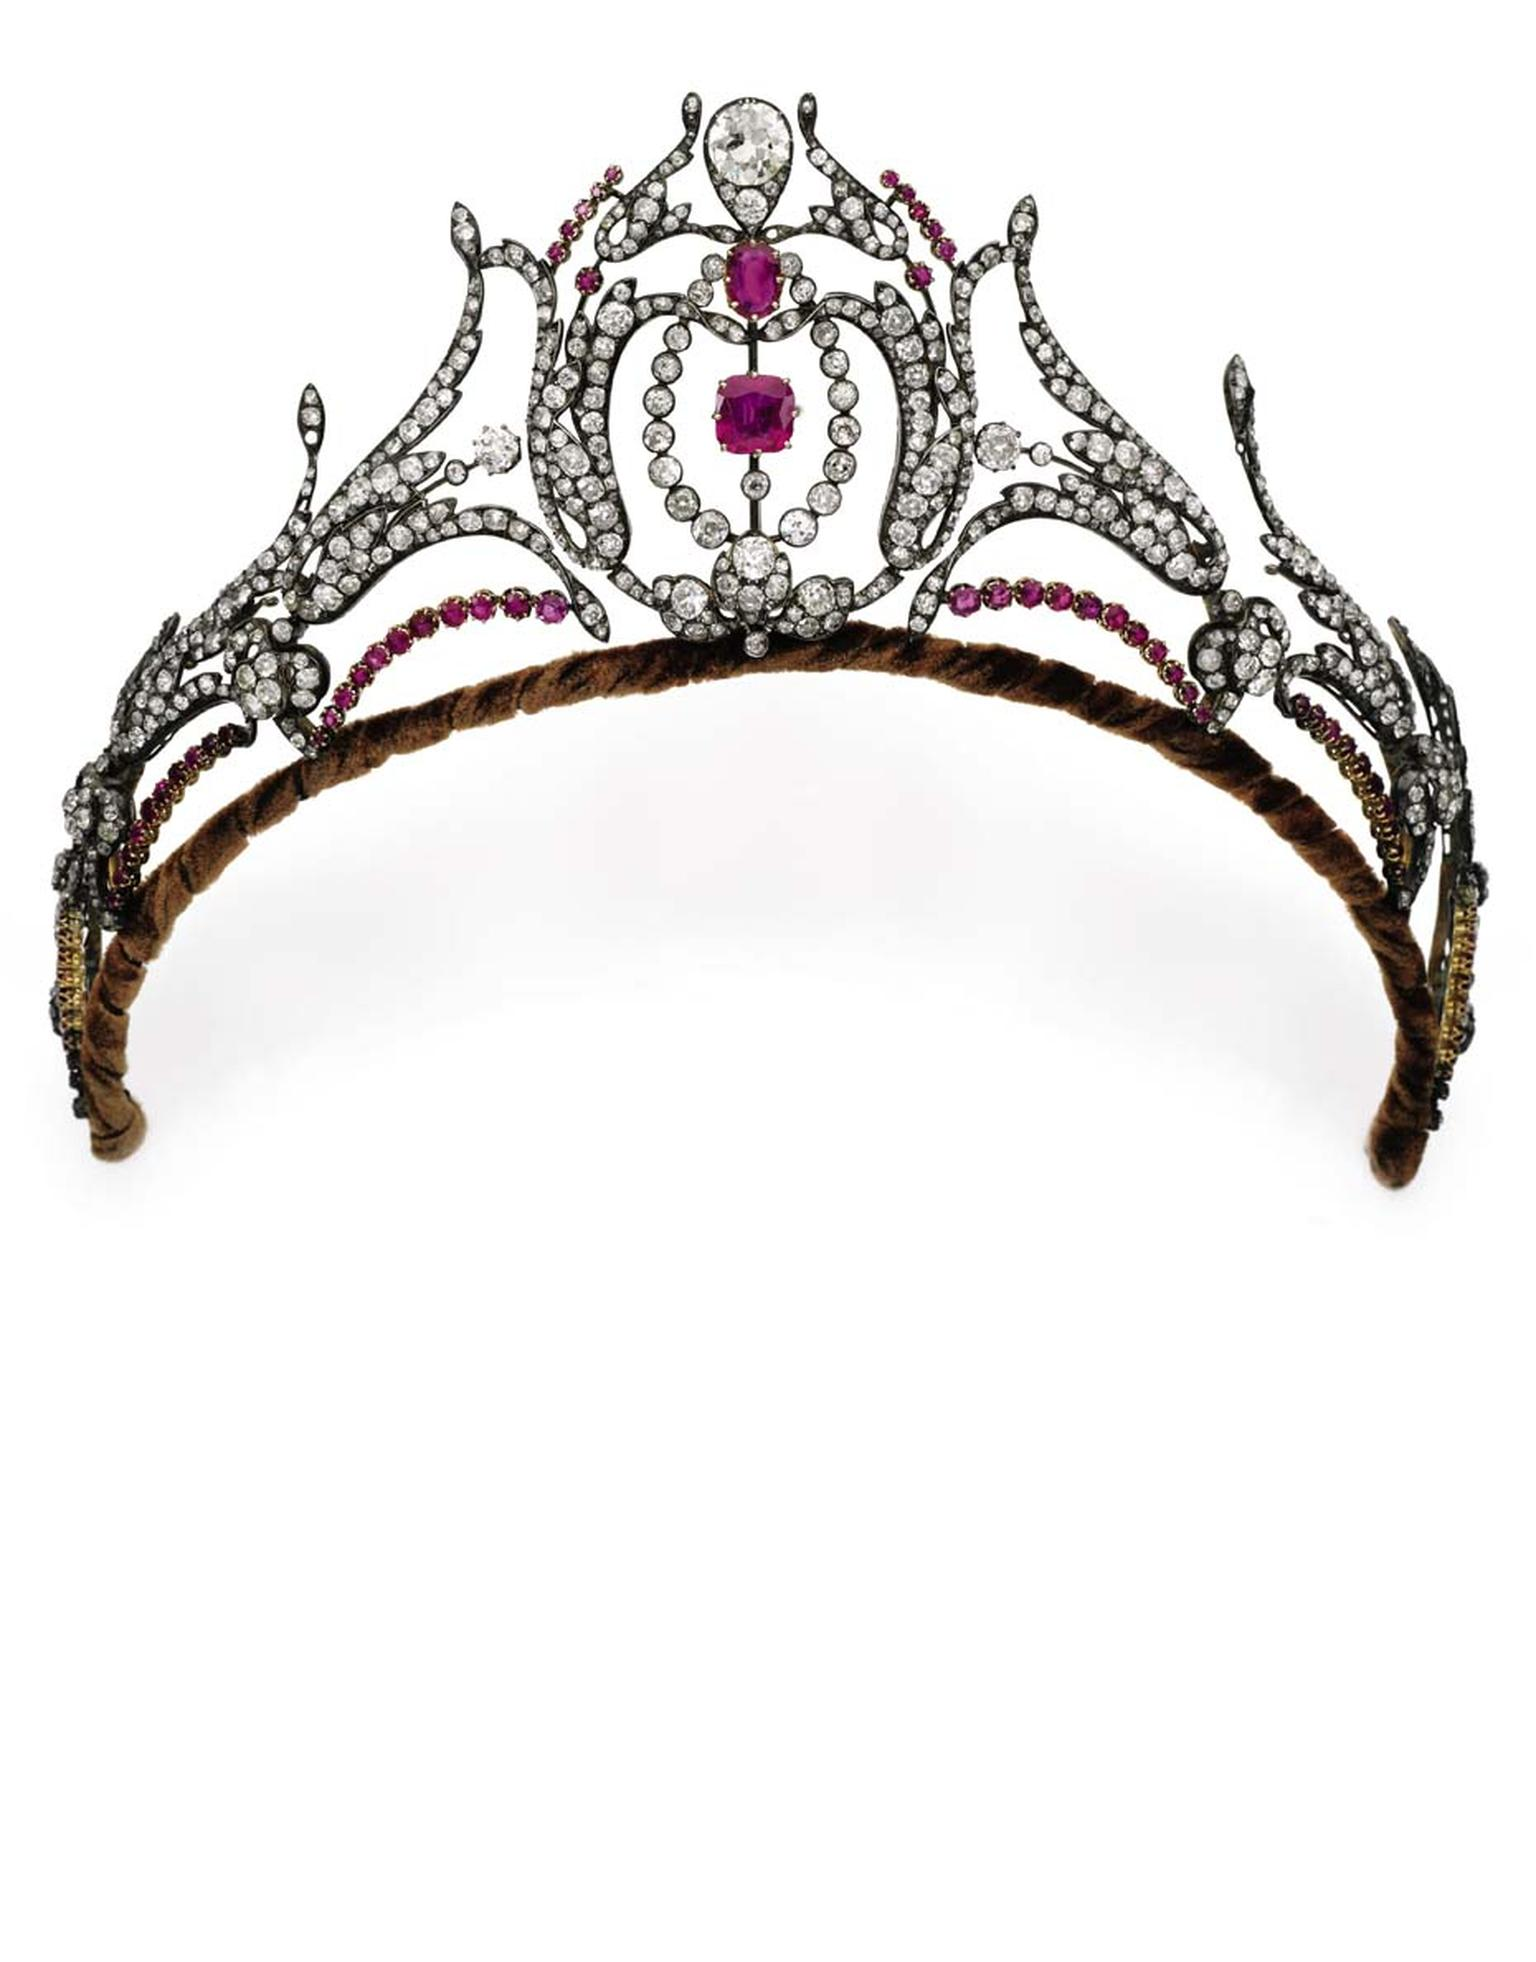 Dating from the second half of the 19th century, this diamond and ruby tiara, which belonged to the late Duchess of Roxburghe, is one of five antique tiaras that will be auctioned by Sotheby's Geneva in May (estimate: $81-102,000).